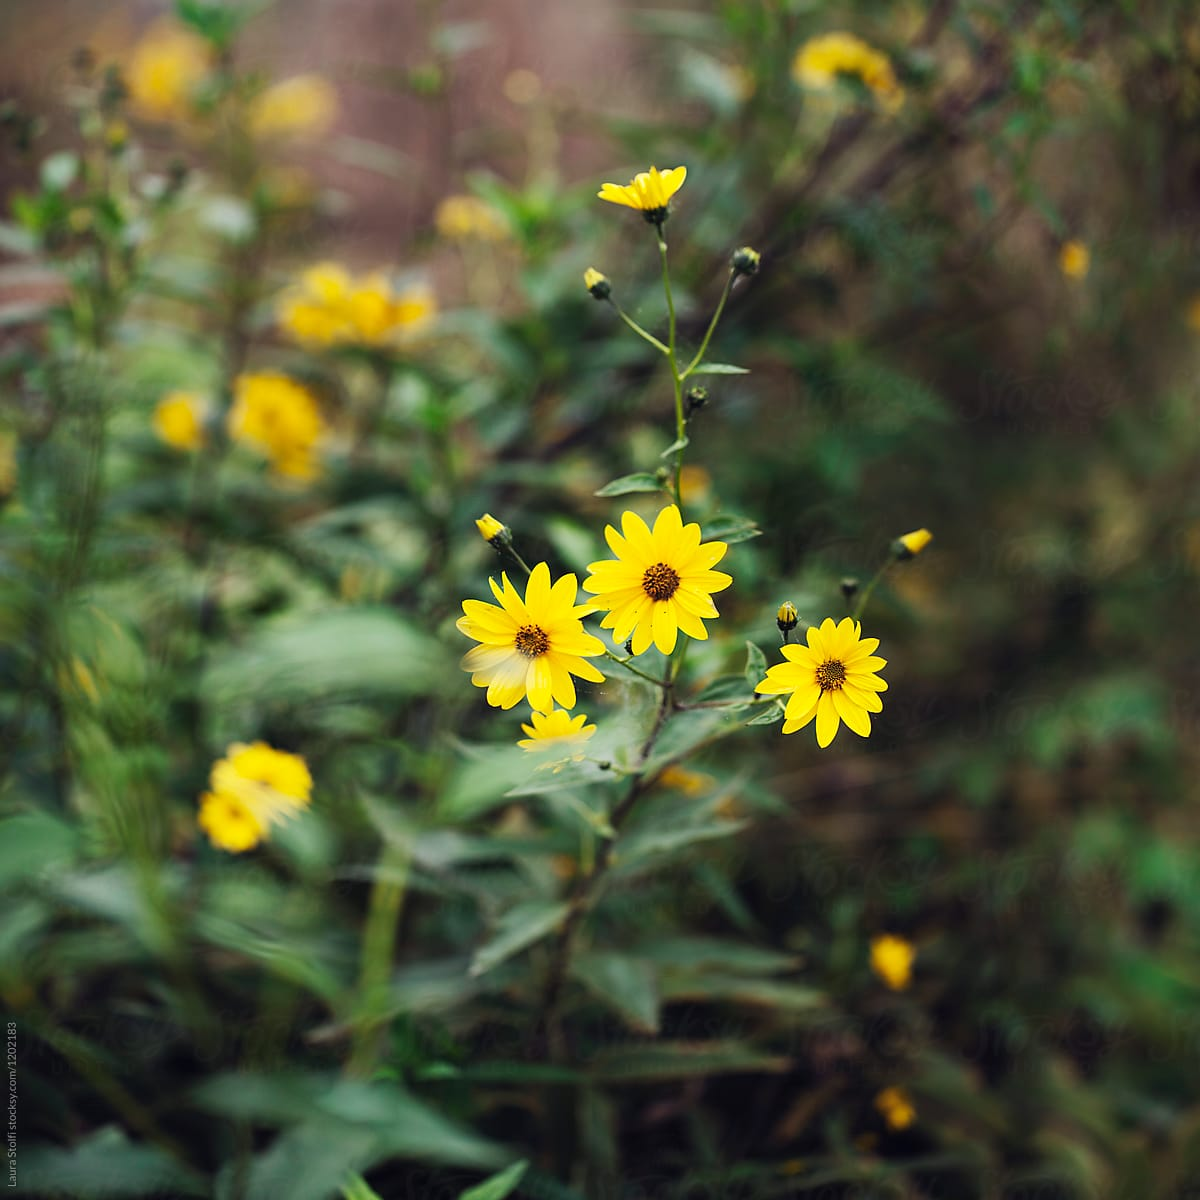 Sunchoke Plant With Yellow Flowers In Bloom Stocksy United